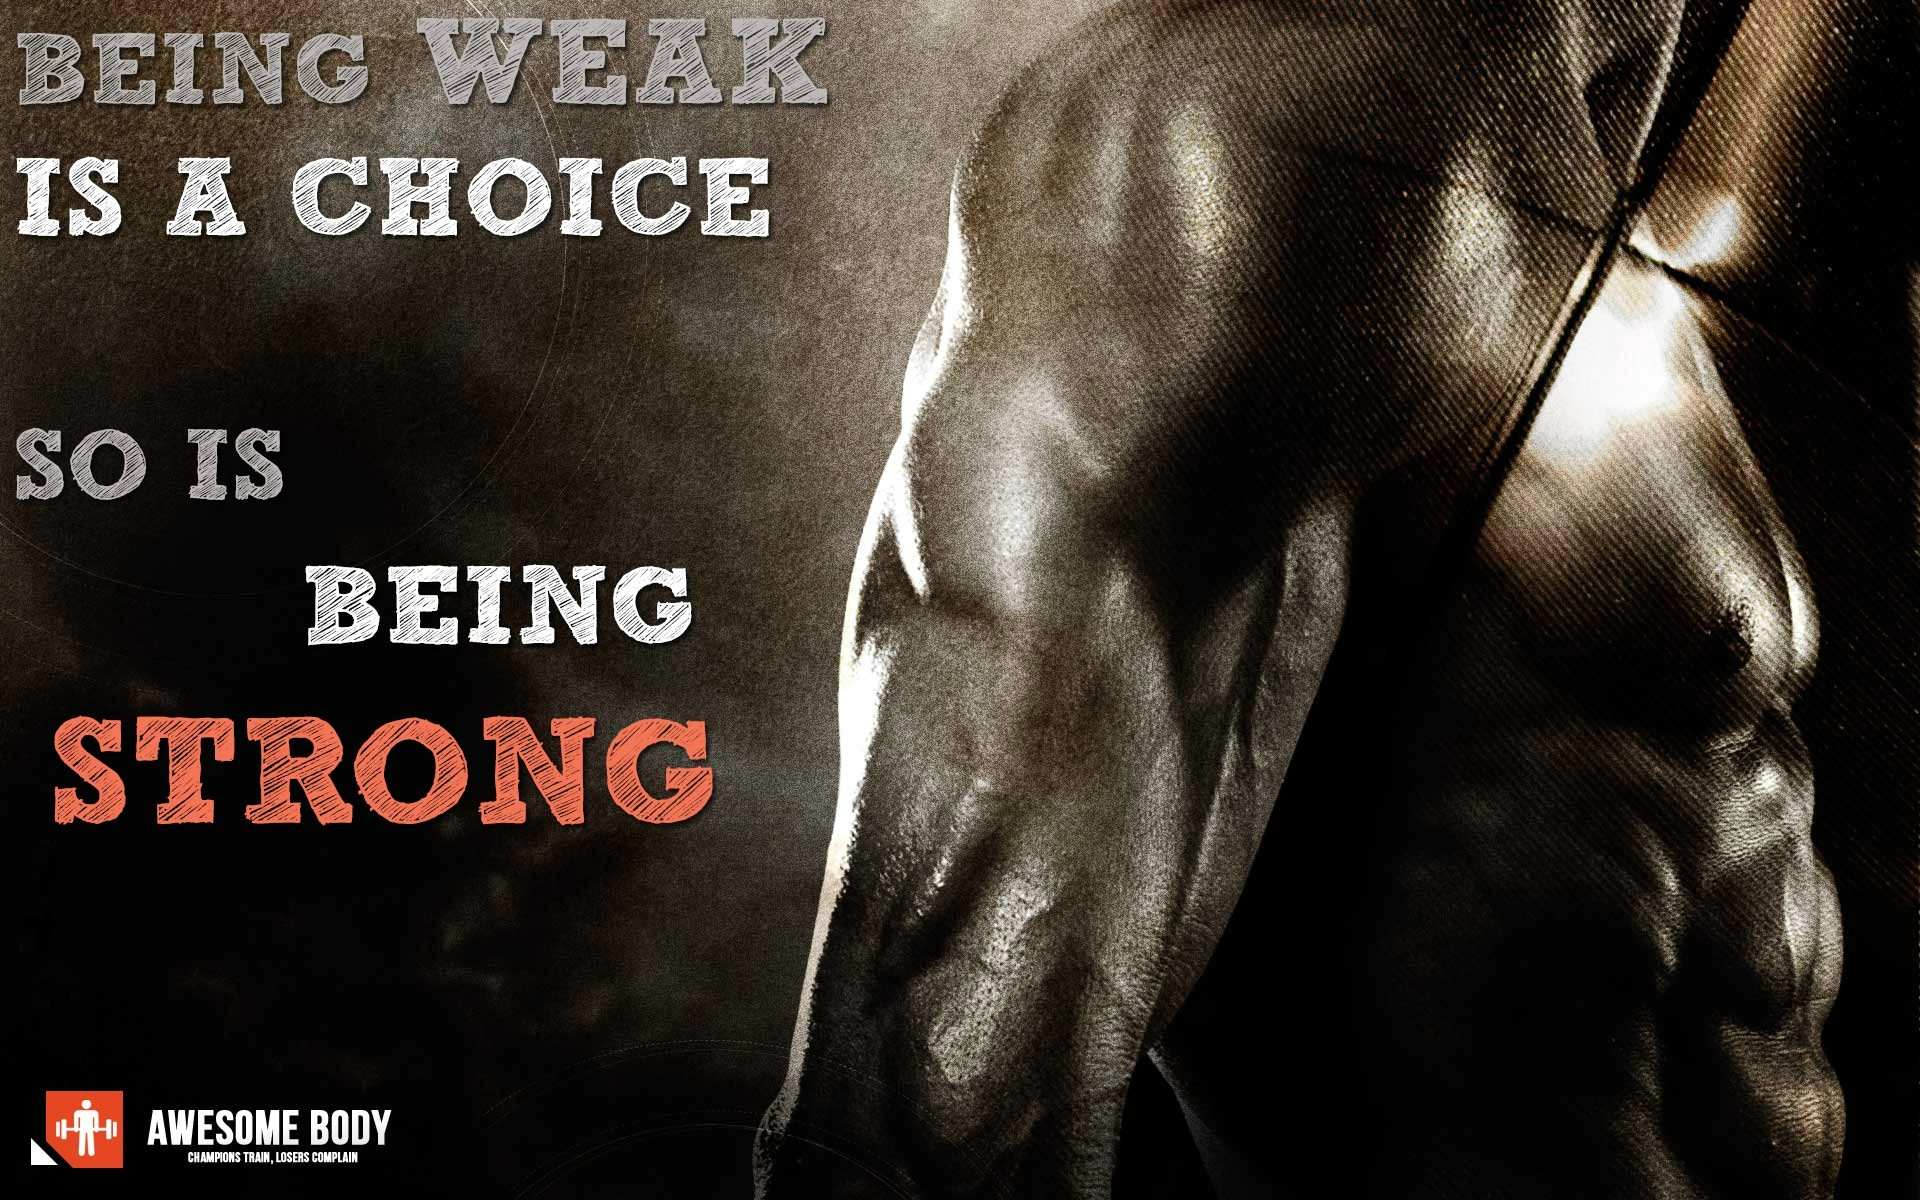 bodybuilding motivation wallpaper hd being strong is choice